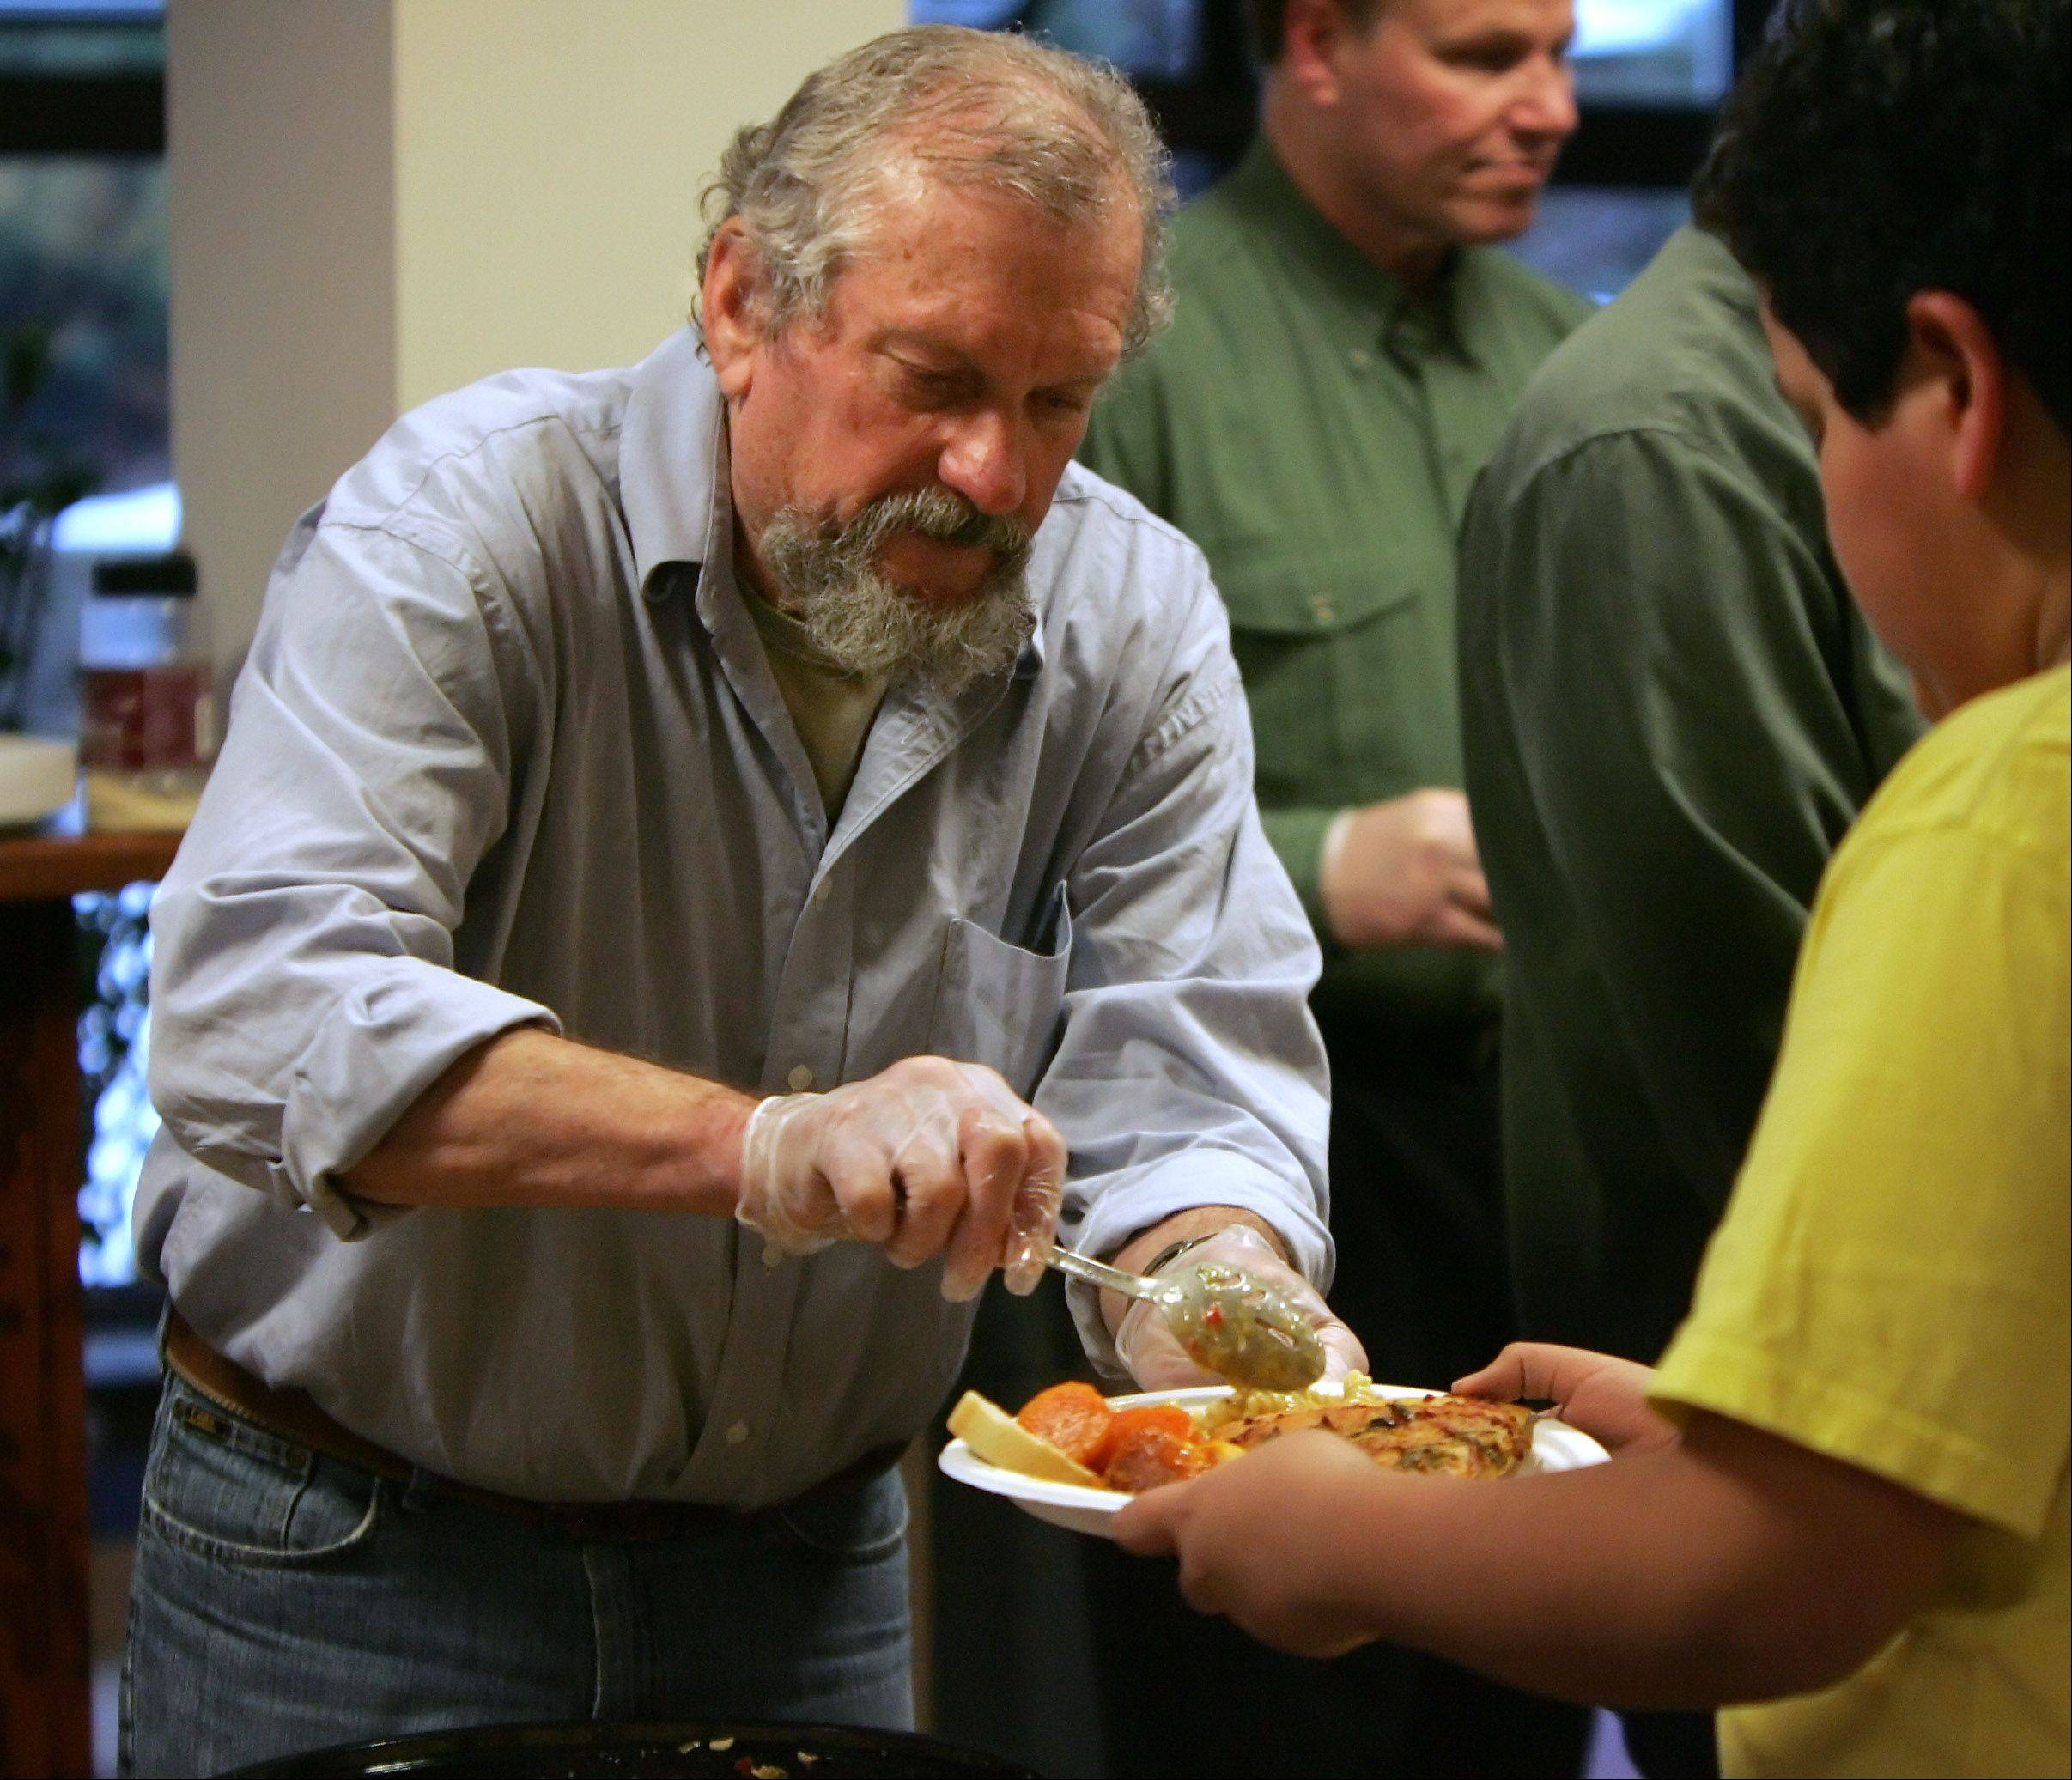 Volunteer Al Ceisel, of Crystal Lake, dishes out food to guests served by Emmaus House of Hospitality, a Lake County charity, at St. Francis de Sales Catholic Church in Lake Zurich. Each Sunday, financially stretched families are given a good meal and provided groceries from the food pantry to take home.